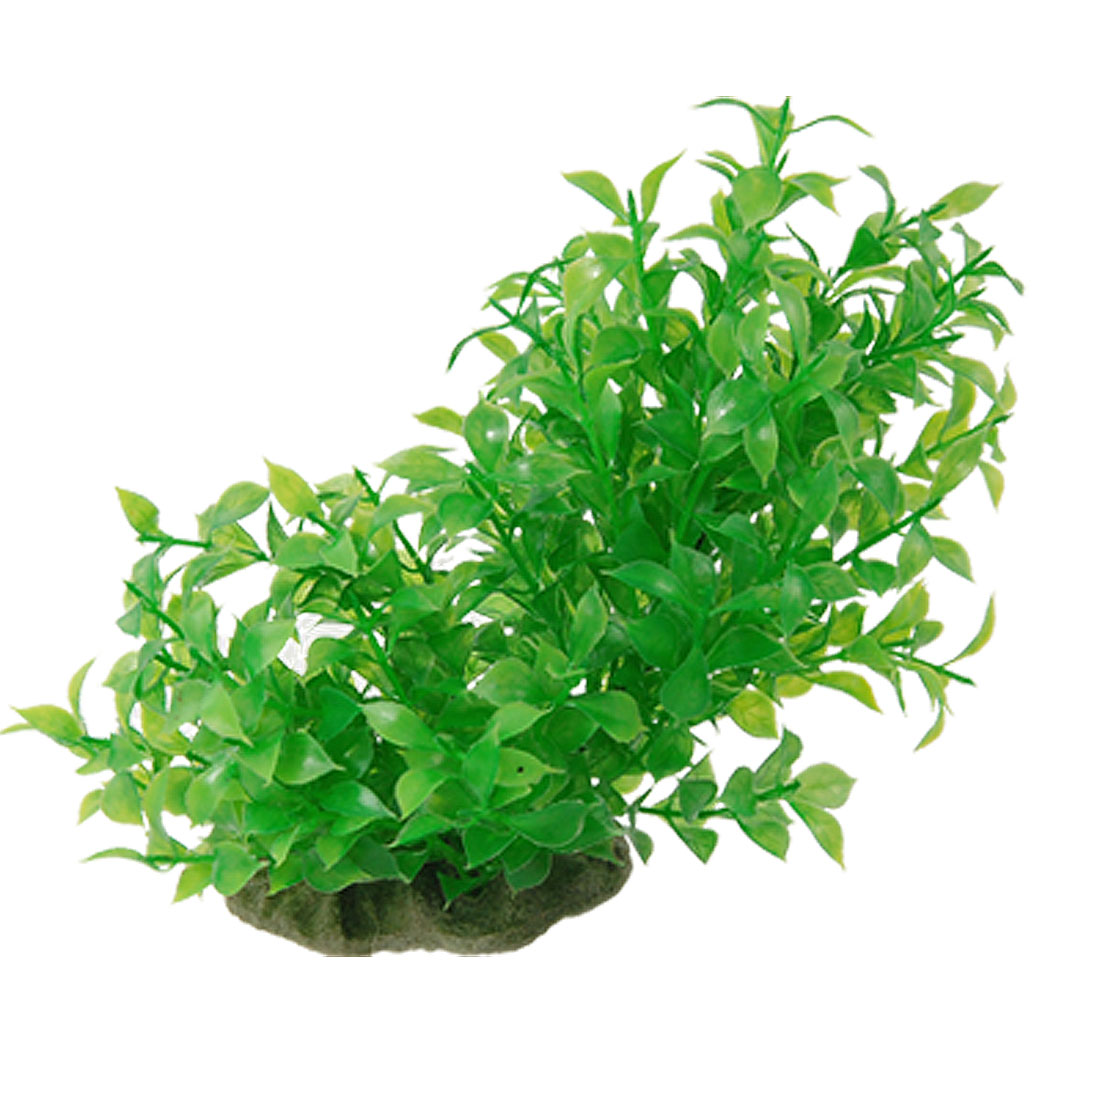 "6"" Length Green Plastic Grass Plant Decor for Fish Tank"